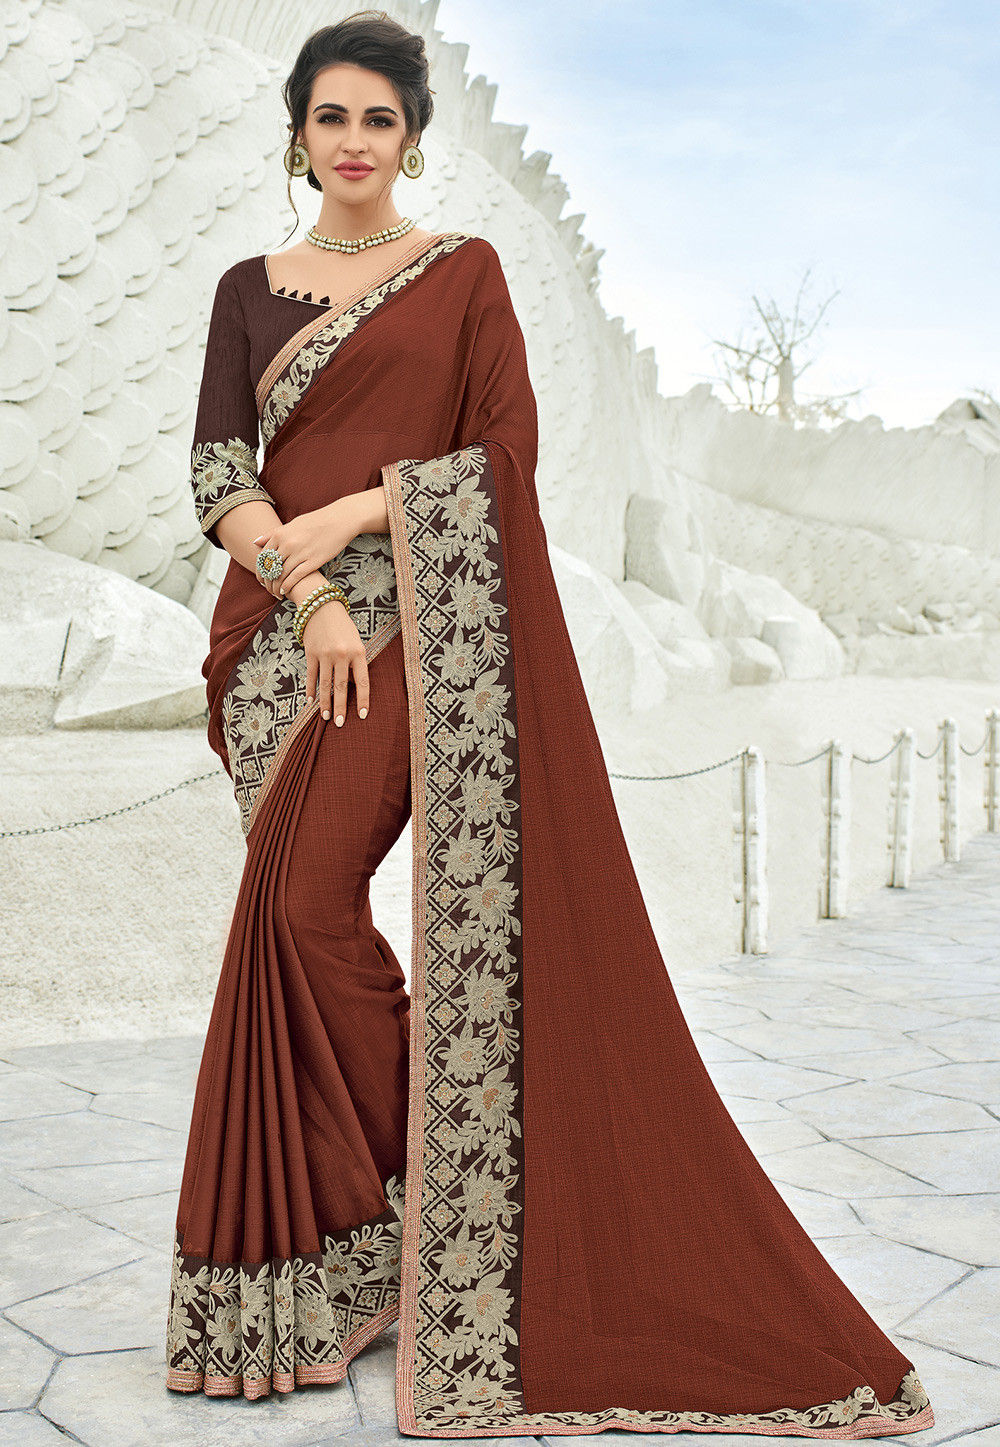 Embroidered Border Chiffon Saree in Brown